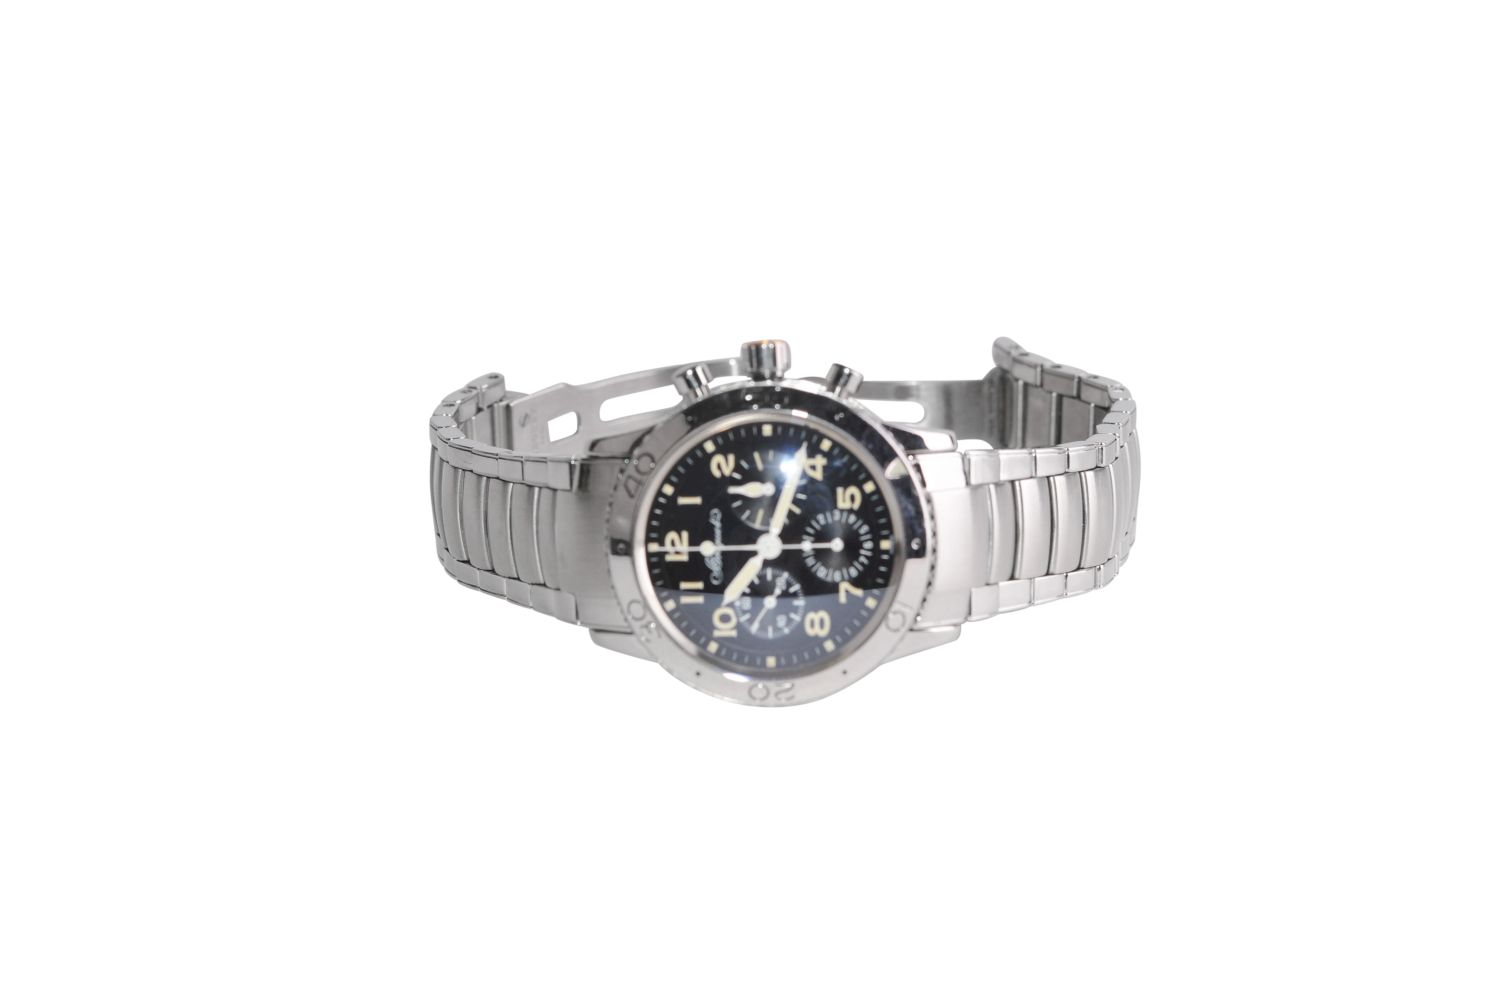 BREGUET Type XX AeronavaleSteel watch with steel strap automatic chrono 39 mm without box without - Bild 3 aus 5